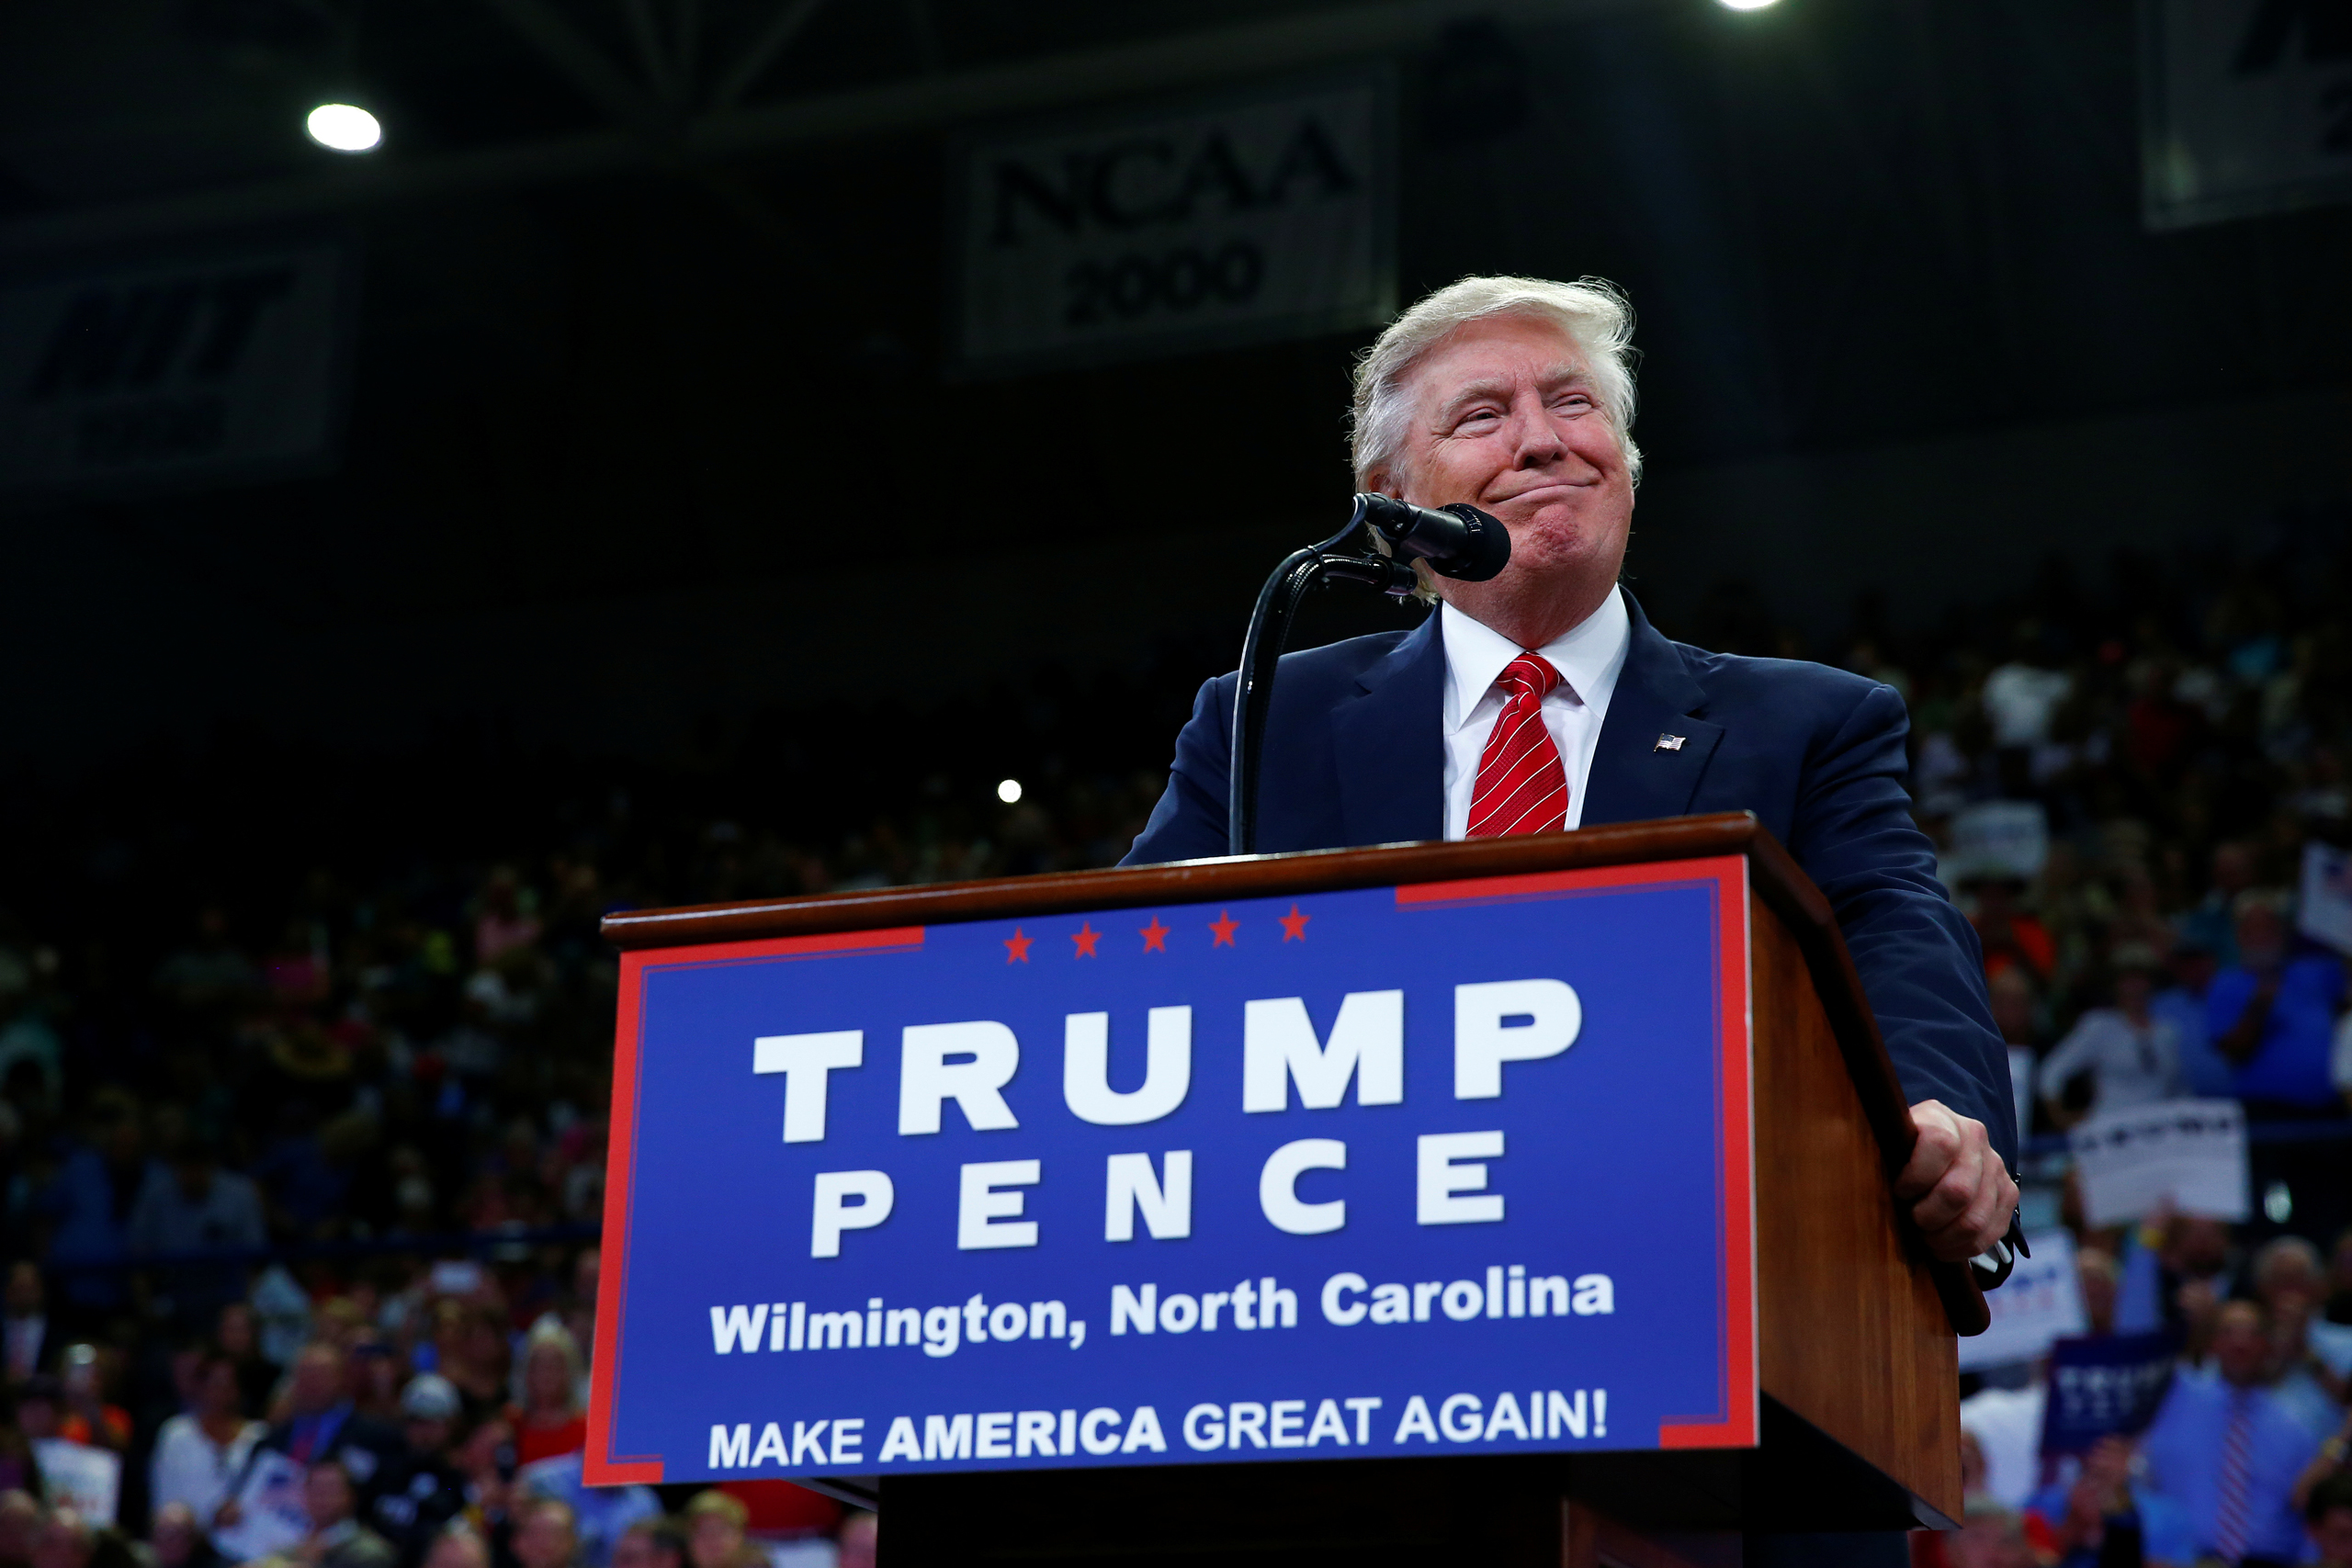 Republican U.S. presidential nominee Donald Trump speaks to the Trask Coliseum at University of North Carolina in Wilmington, N.C., on Aug. 9, 2016.